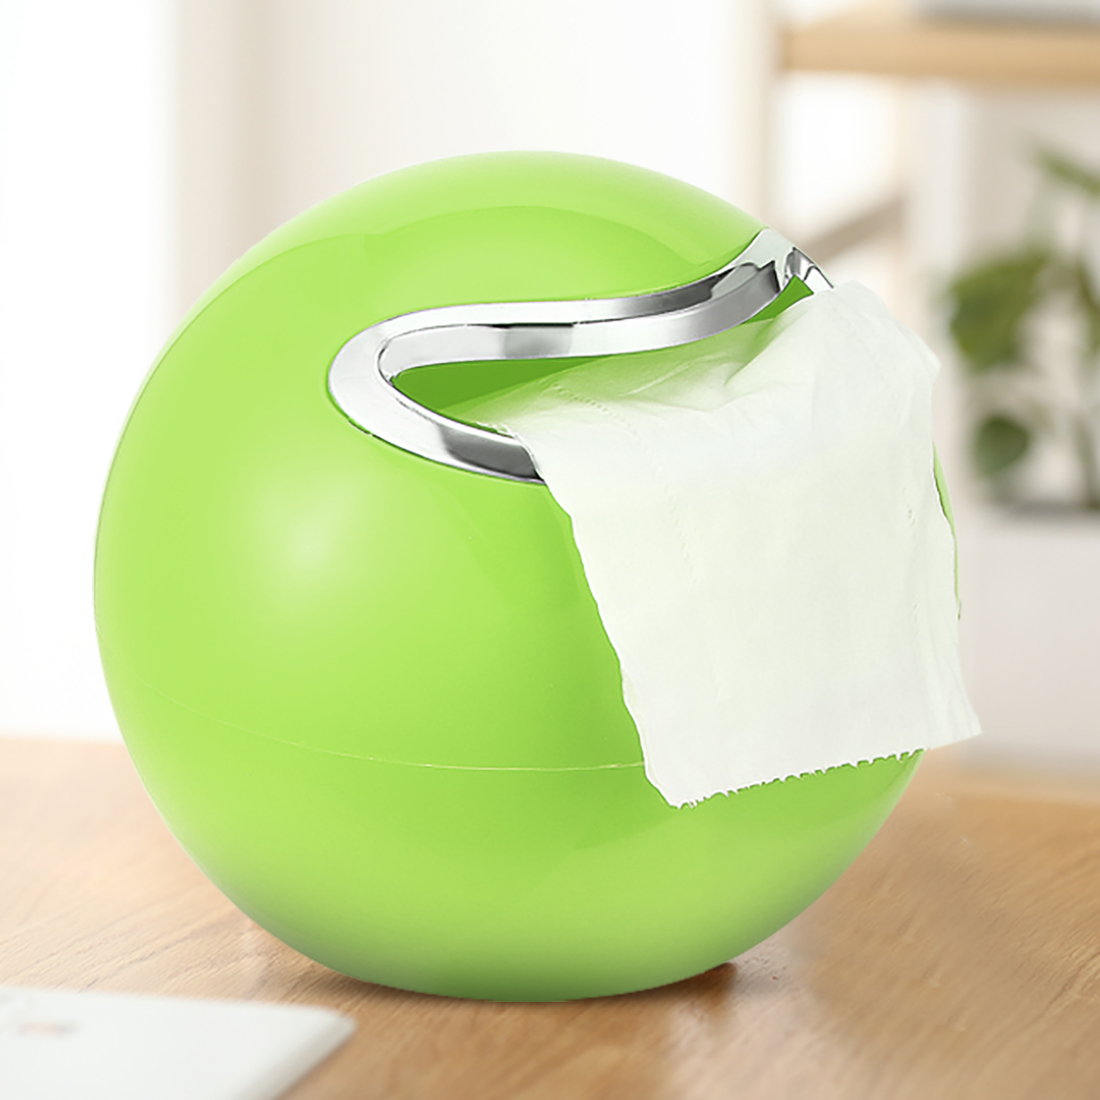 Unique Bargains 180mm Dia ABS Plastic Green Dual-Purpose Round Toilet Roll Paper Holder - image 5 of 7